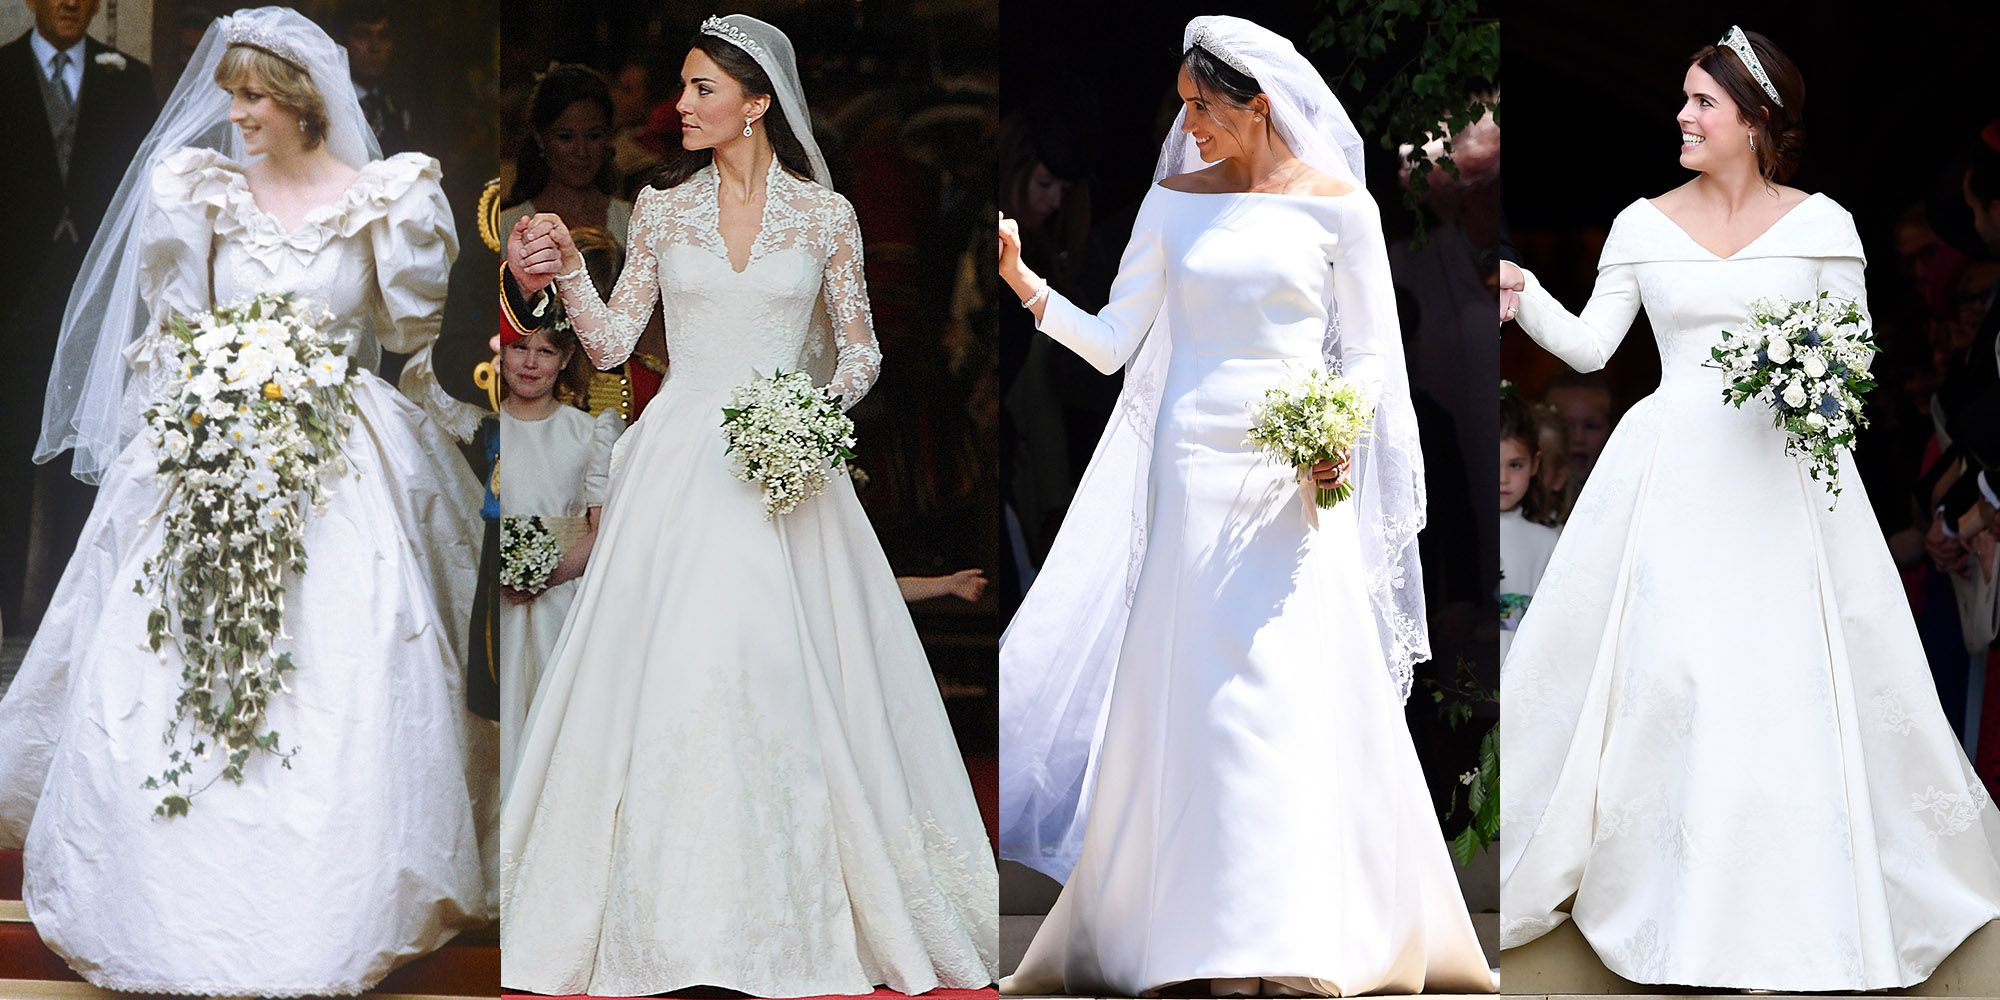 How Princess Eugenie's Wedding Dress Compares to Meghan Markle, Kate Middleton, and Princess Diana's Gowns